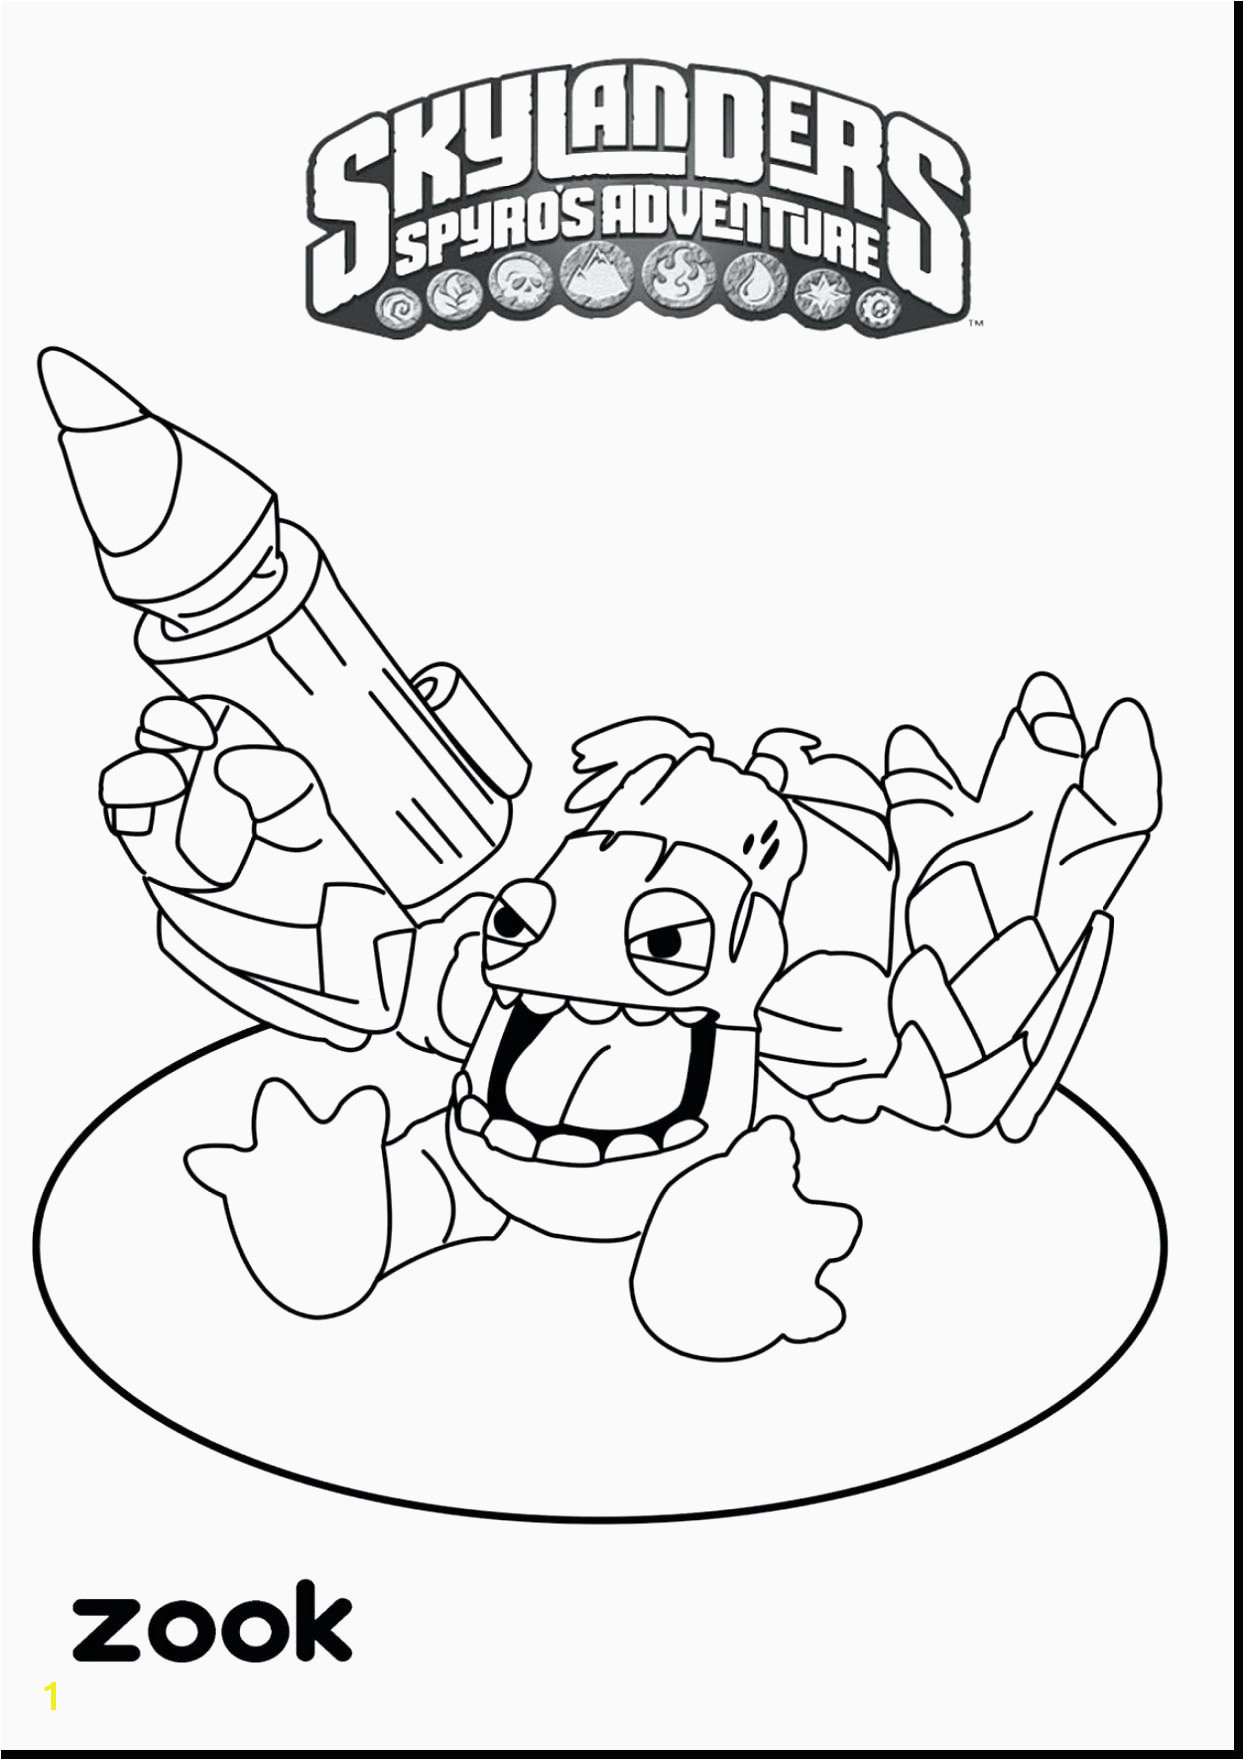 Freak the Mighty Coloring Pages Ben 10 Coloring Pages Upgrade Beautiful Printing Coloring Book